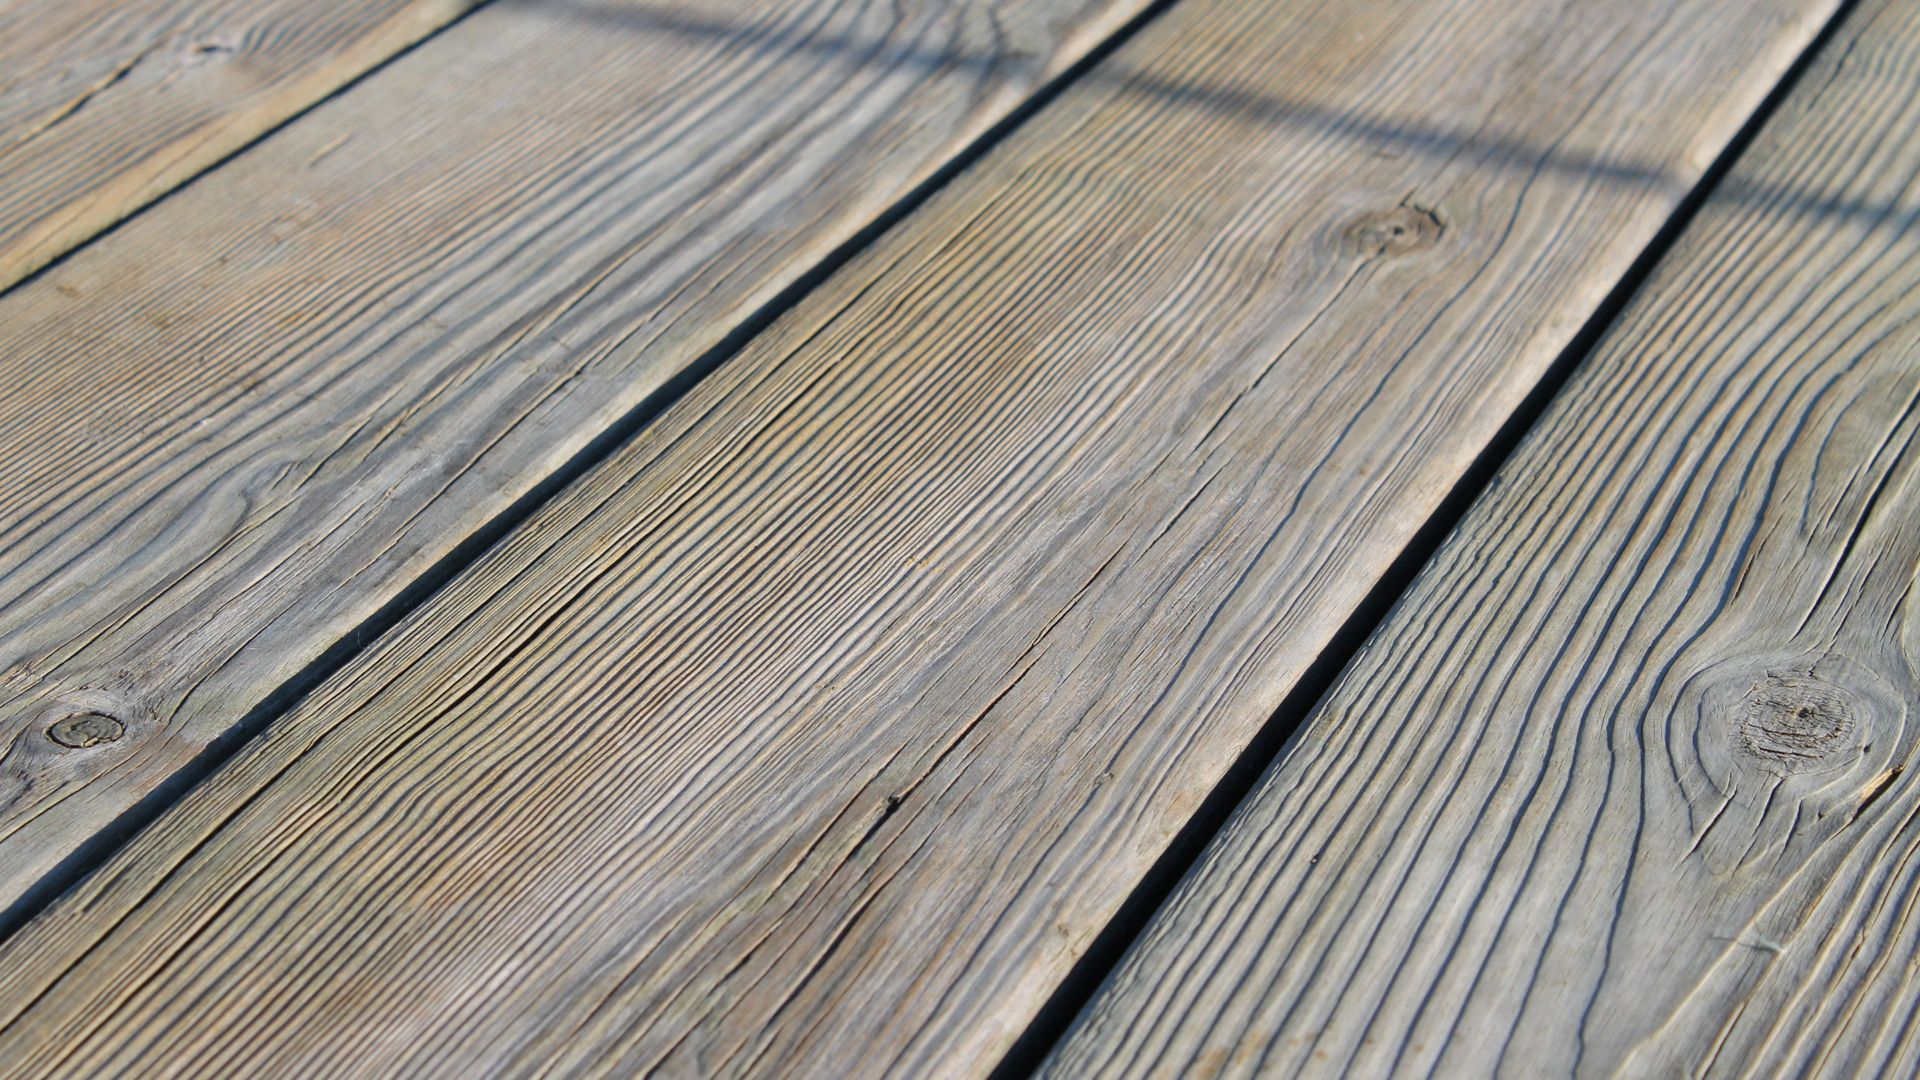 116688 download wallpaper Textures, Texture, Wooden Floor, Planks, Board, Light Coloured, Light screensavers and pictures for free